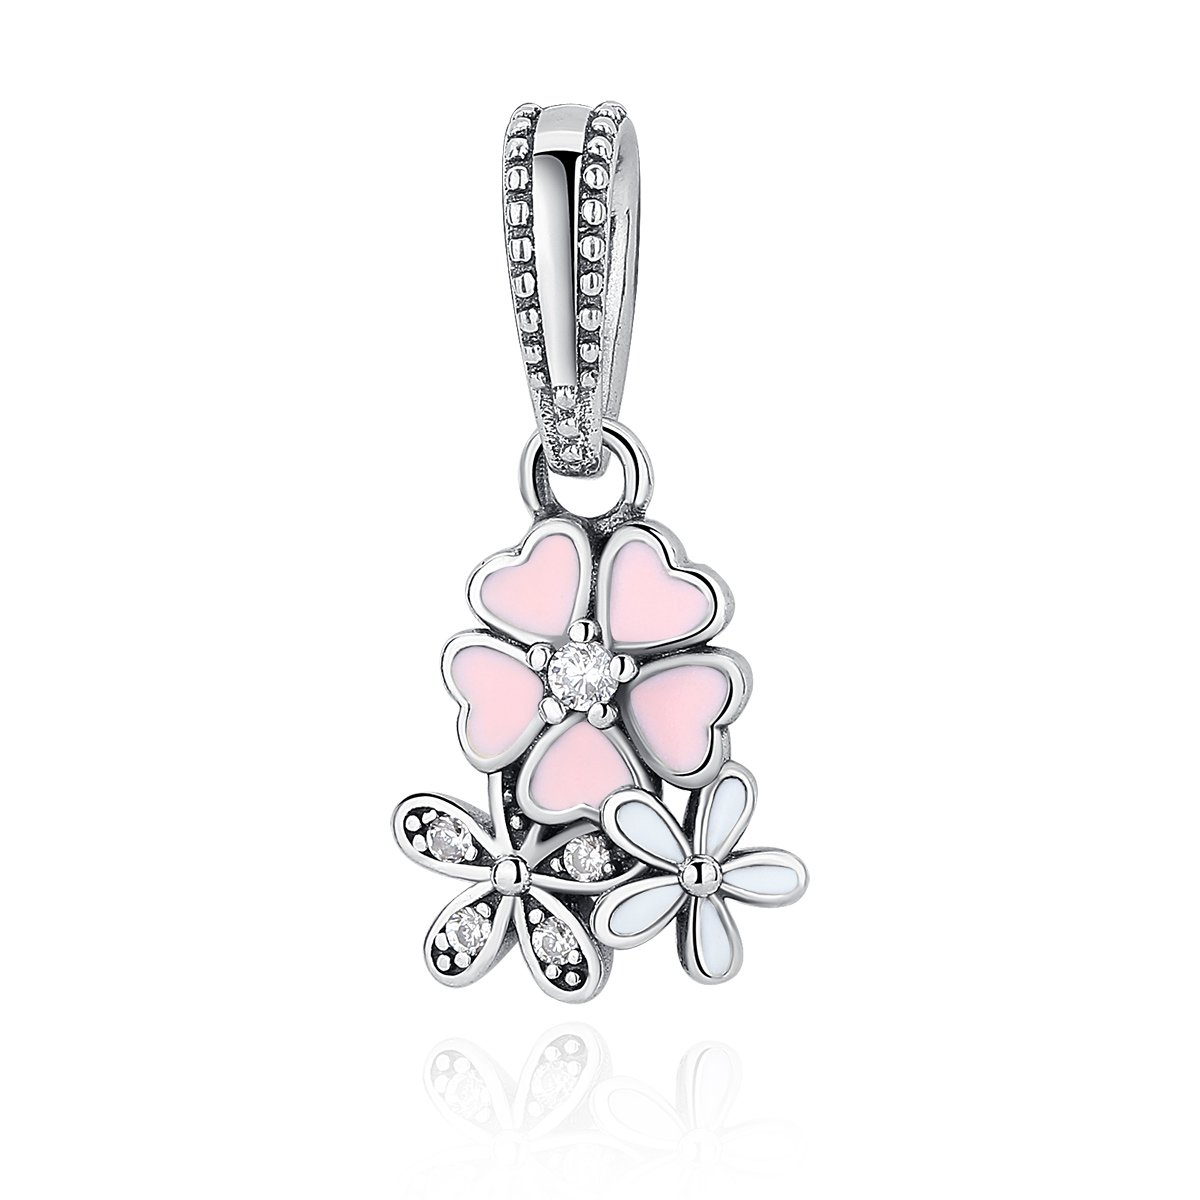 WOSTU 925 Sterling Silver Pink Flower Dangle Charm fit Charm Bracelets Silver Charm Pendant Necklace